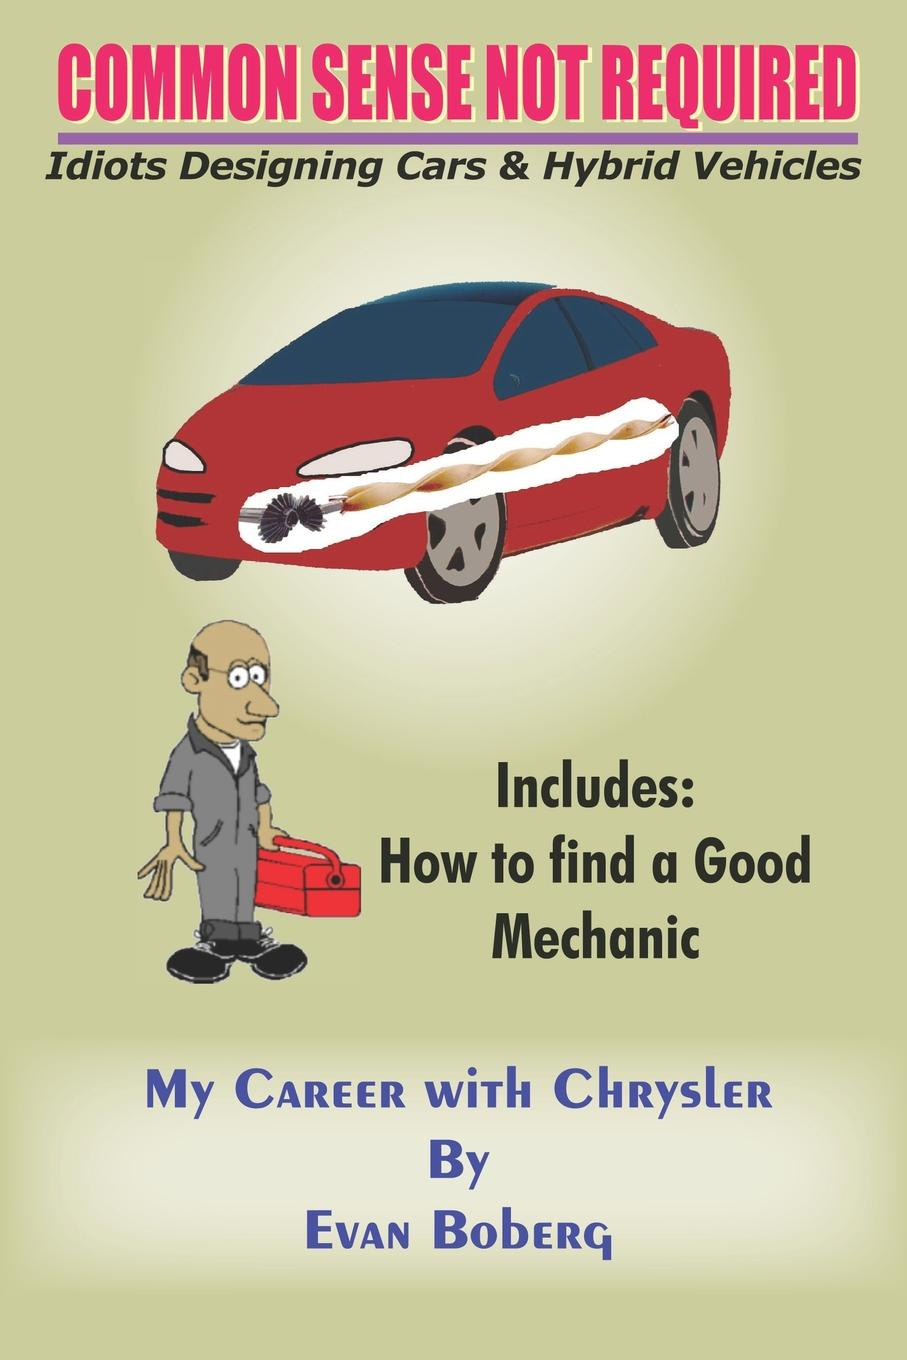 Evan Boberg COMMON SENSE NOT REQUIRED. Idiots Designing Cars + Hybrid Vehicles: My Career with Chrysler